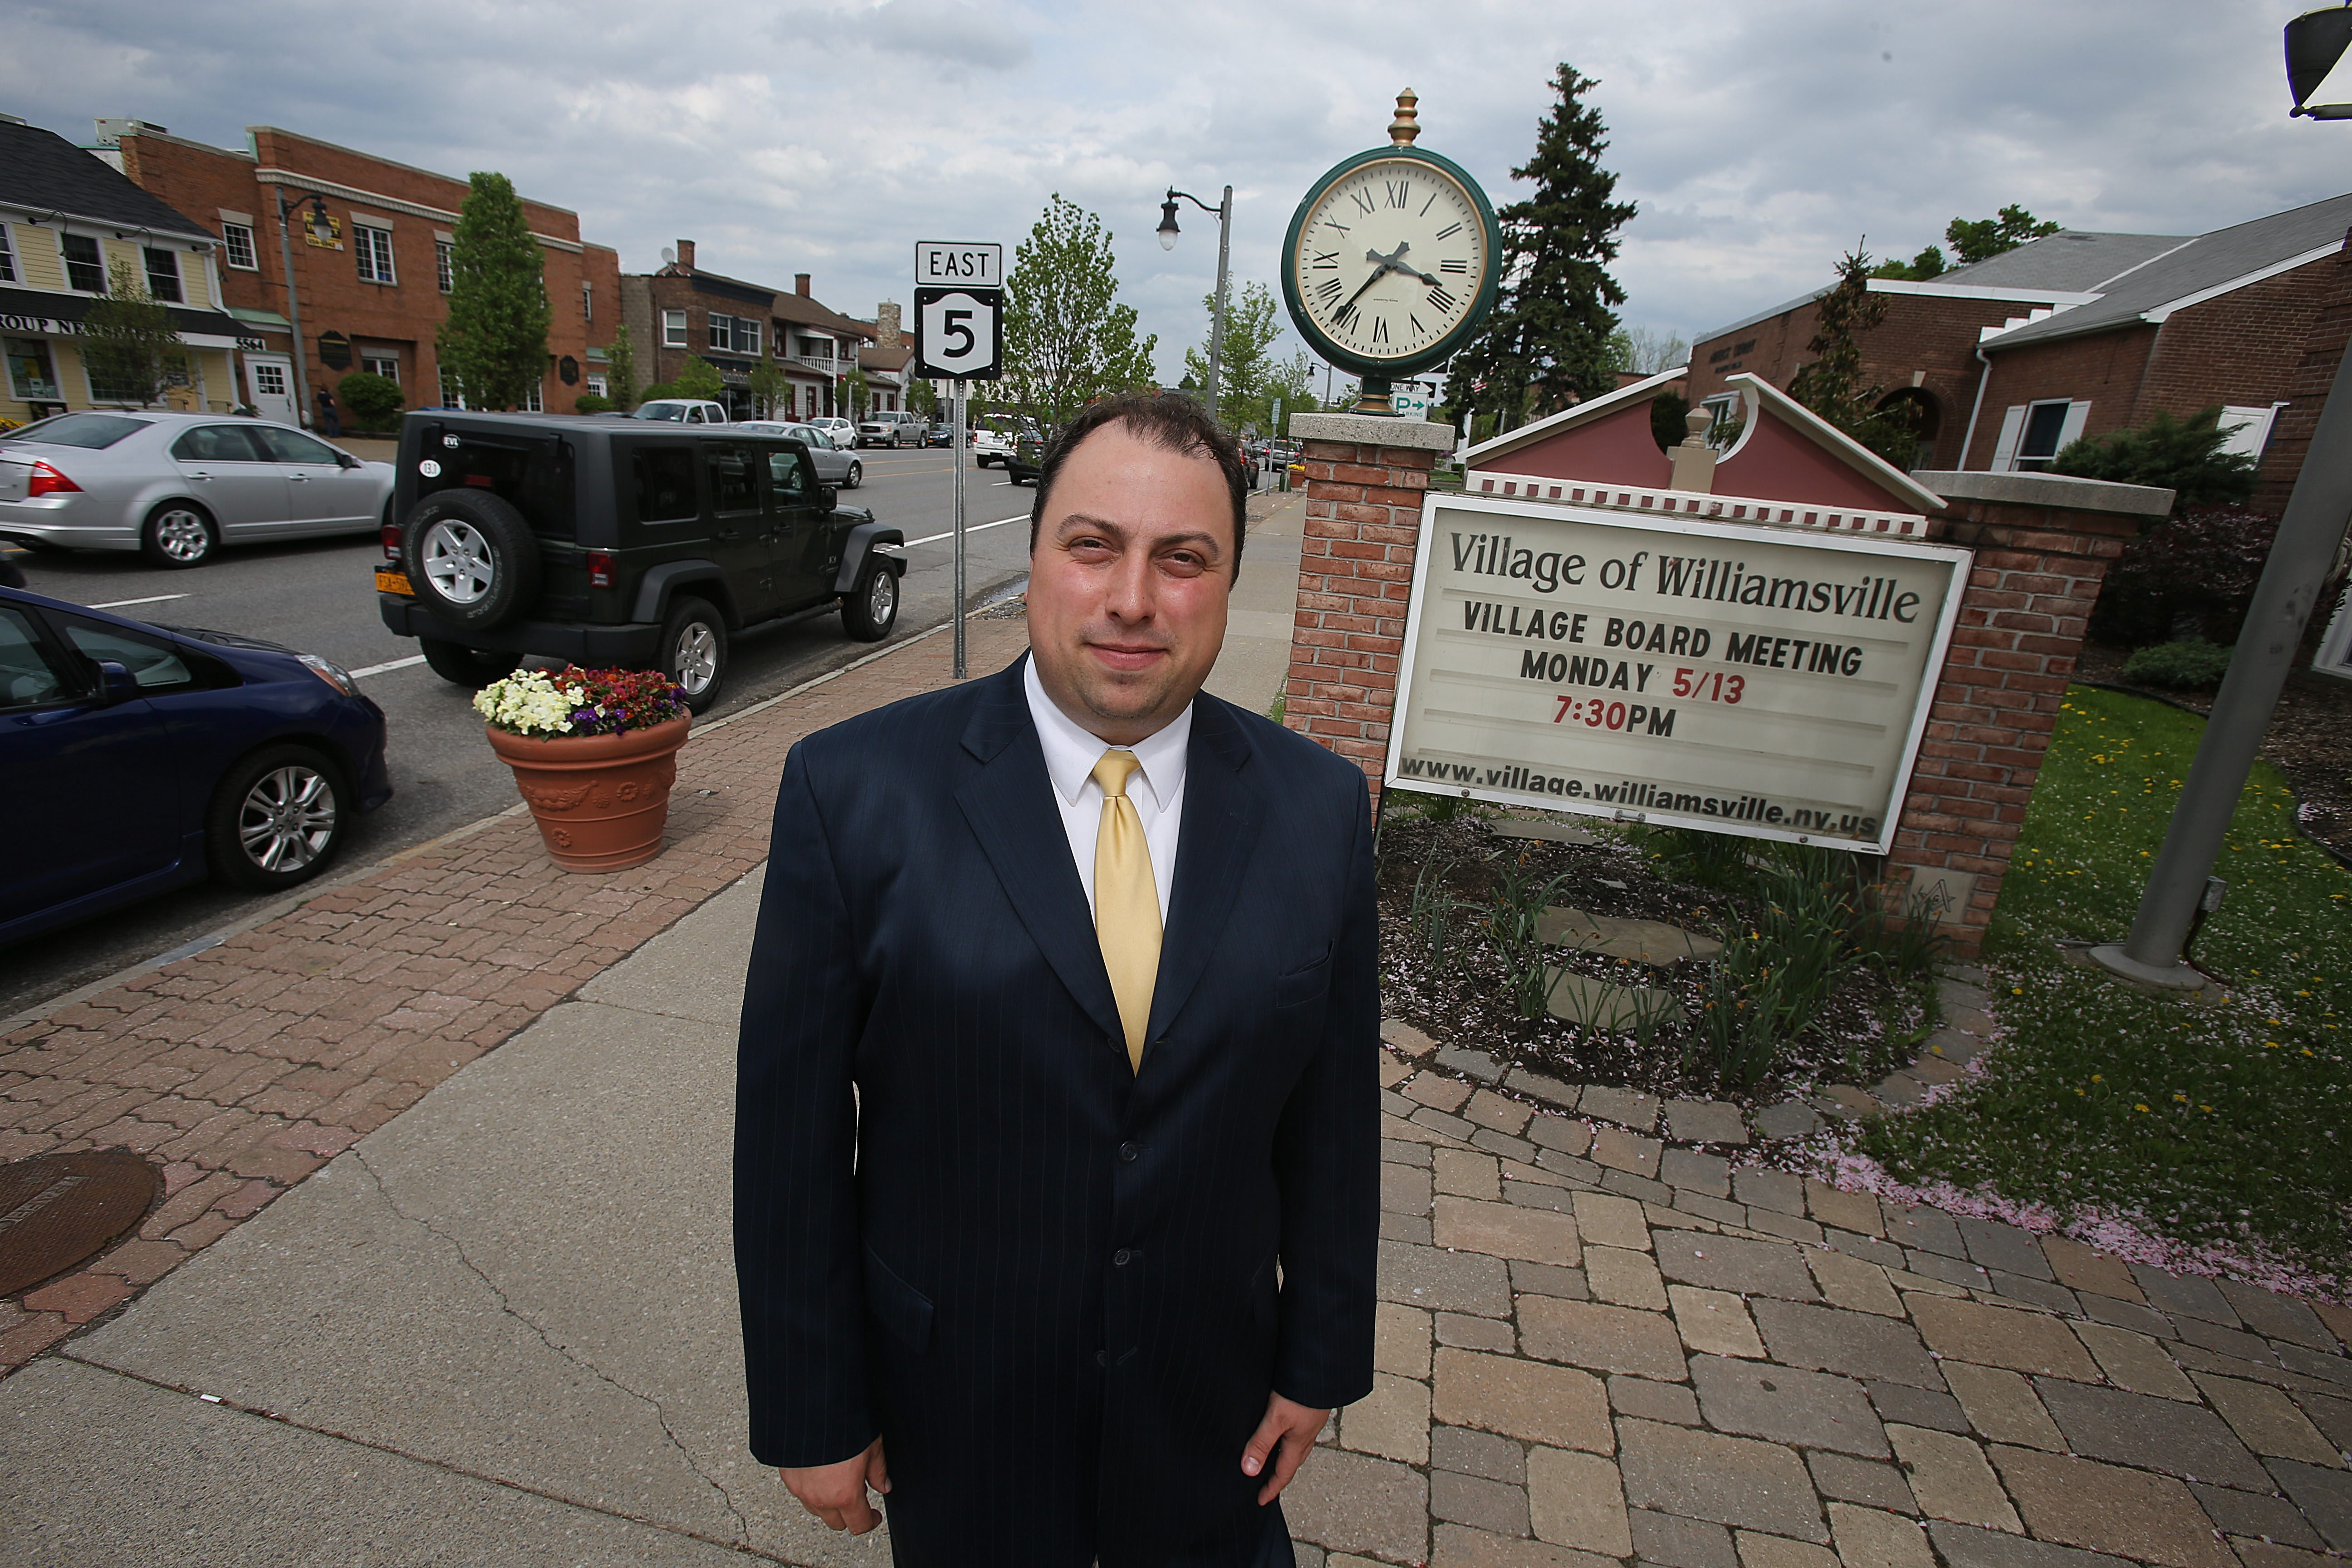 Village of Williamsville Mayor Brian Kulpa,, shown in a May 10, 2013 file photo outside the village offices, is organizing an opioid forum in the village.  (Charles Lewis/Buffalo News)